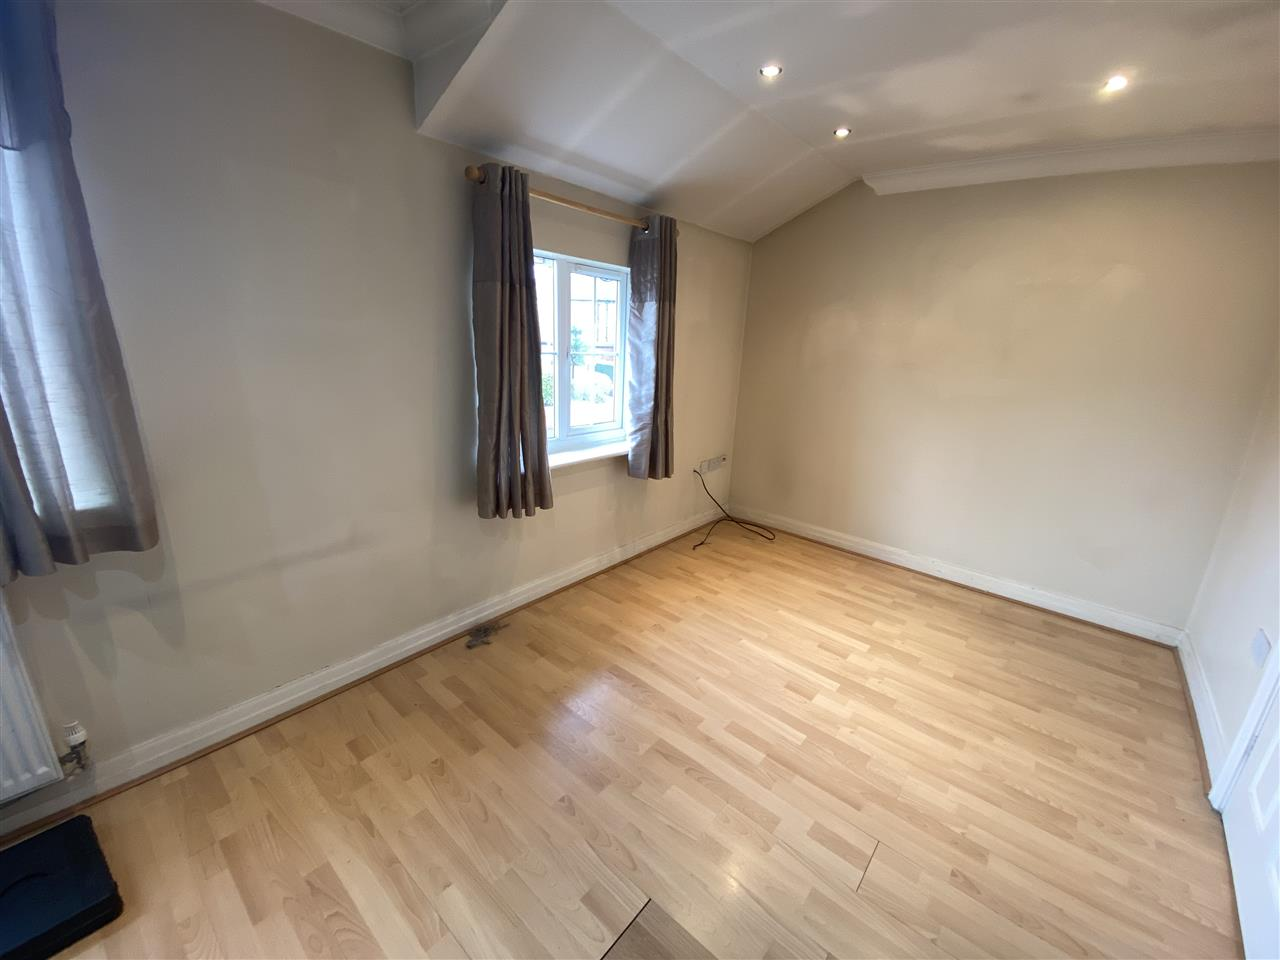 2 bed apartment to rent in Alden Court, Westhoughton, Westhoughton 4